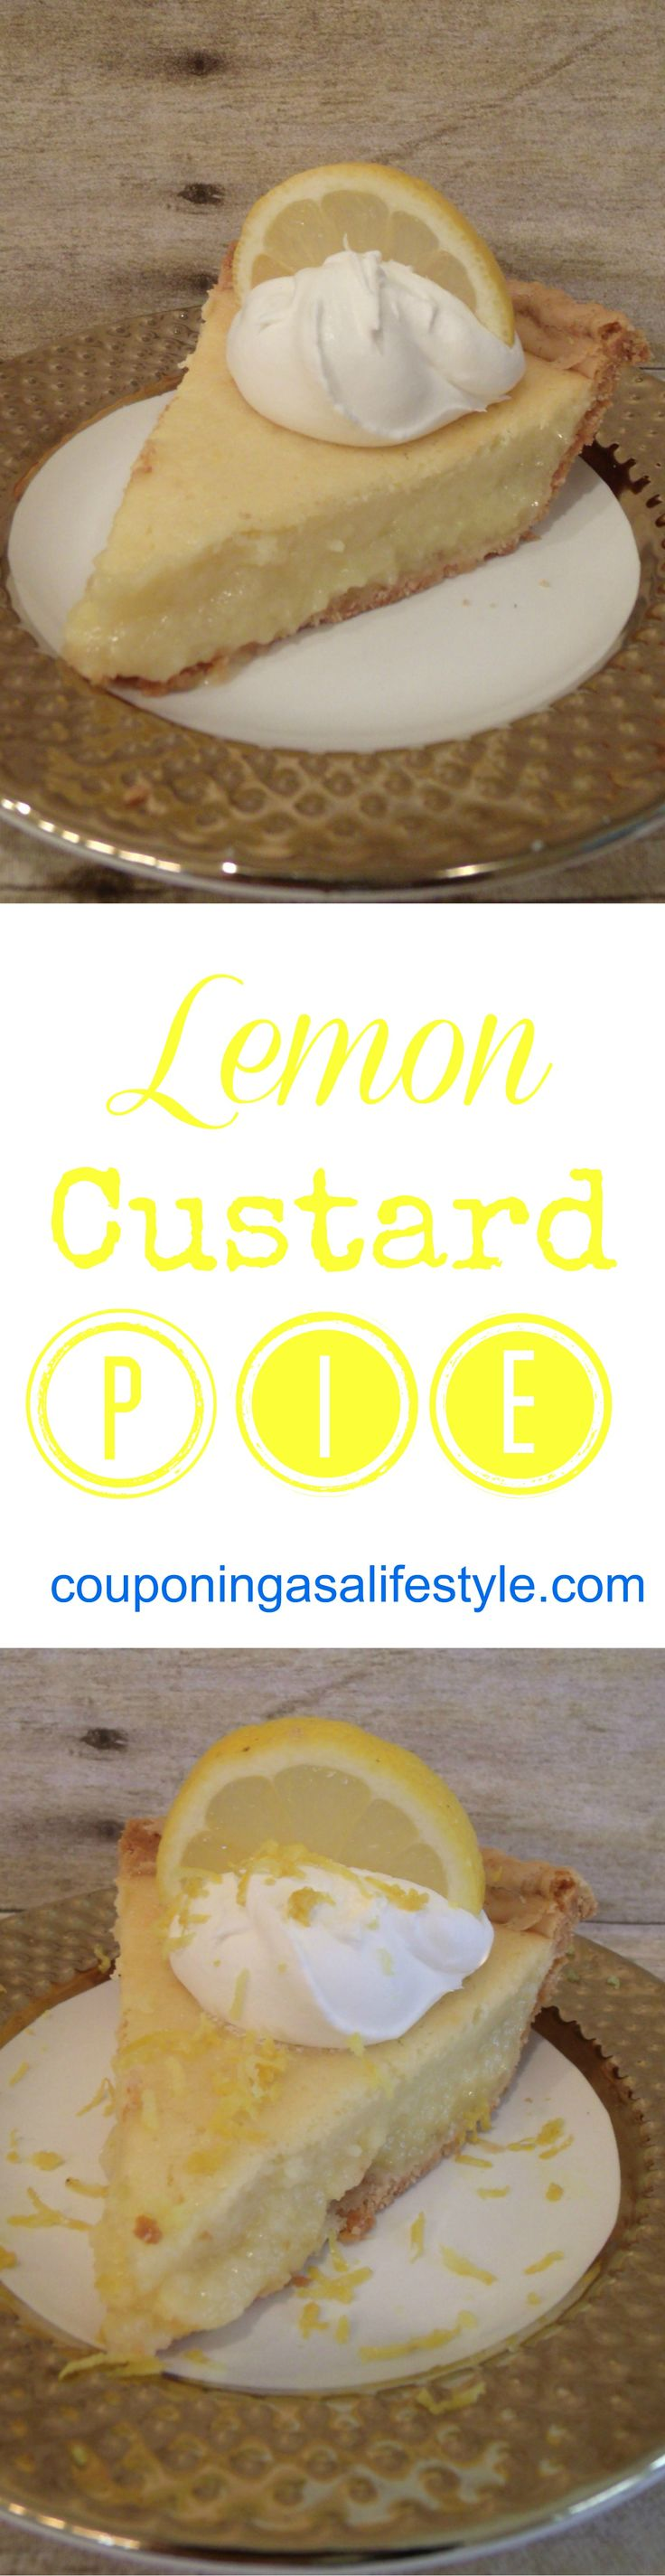 Delicious Lemon Custard Pie that takes me right back to my childhood.  Easy to make and will impress the best.  Pin for later.